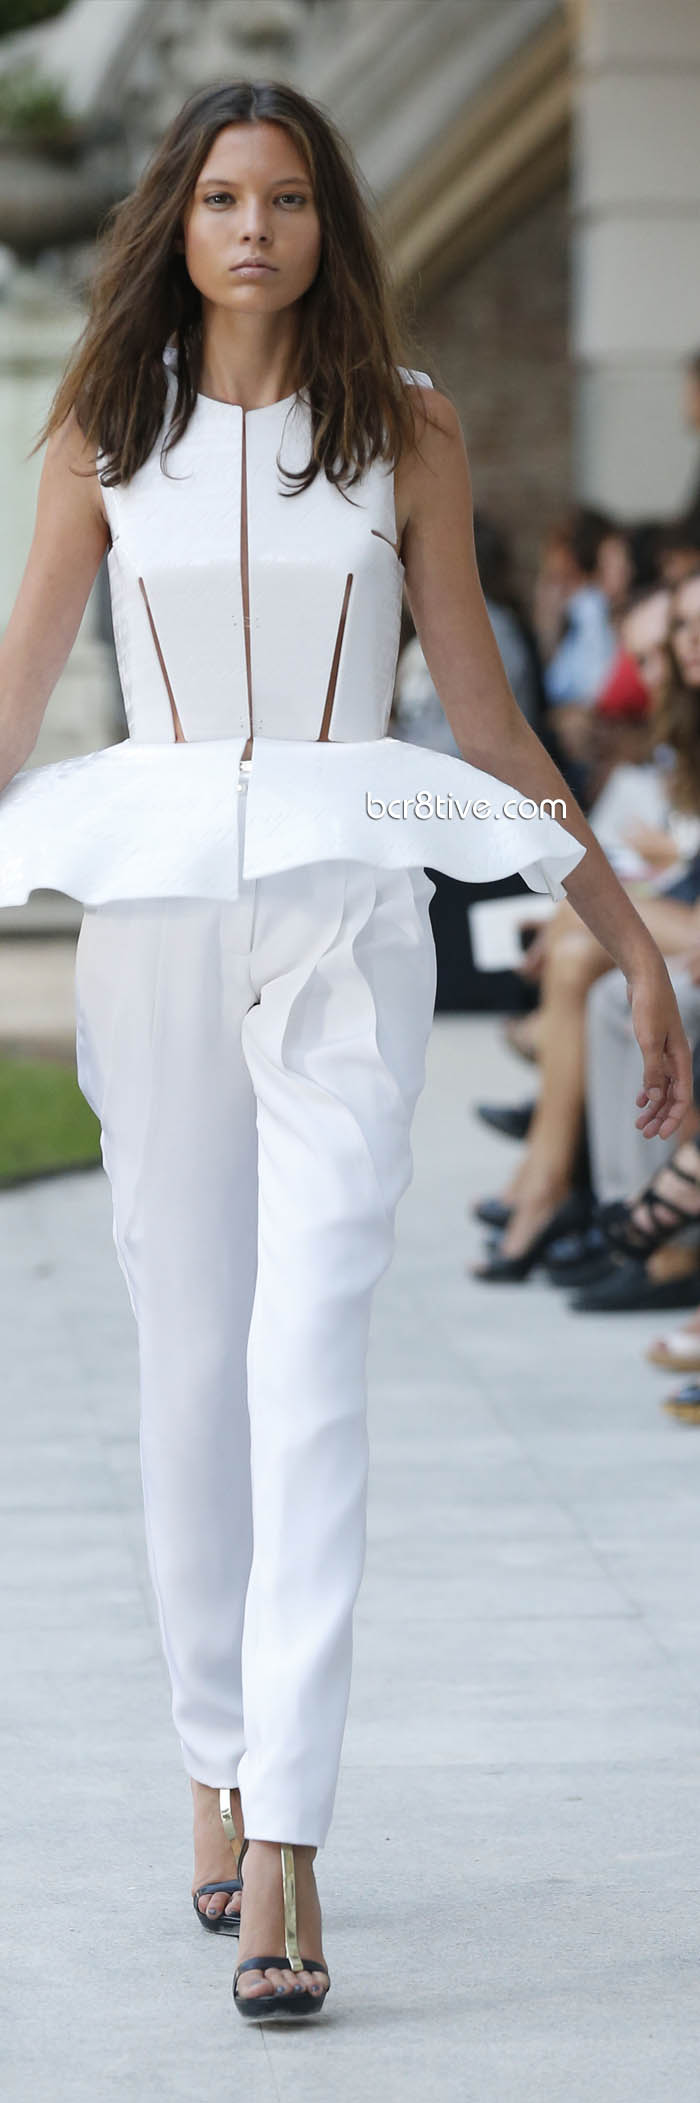 Alvarno Spring Summer 2012 Mercedes-Benz Fashion Week